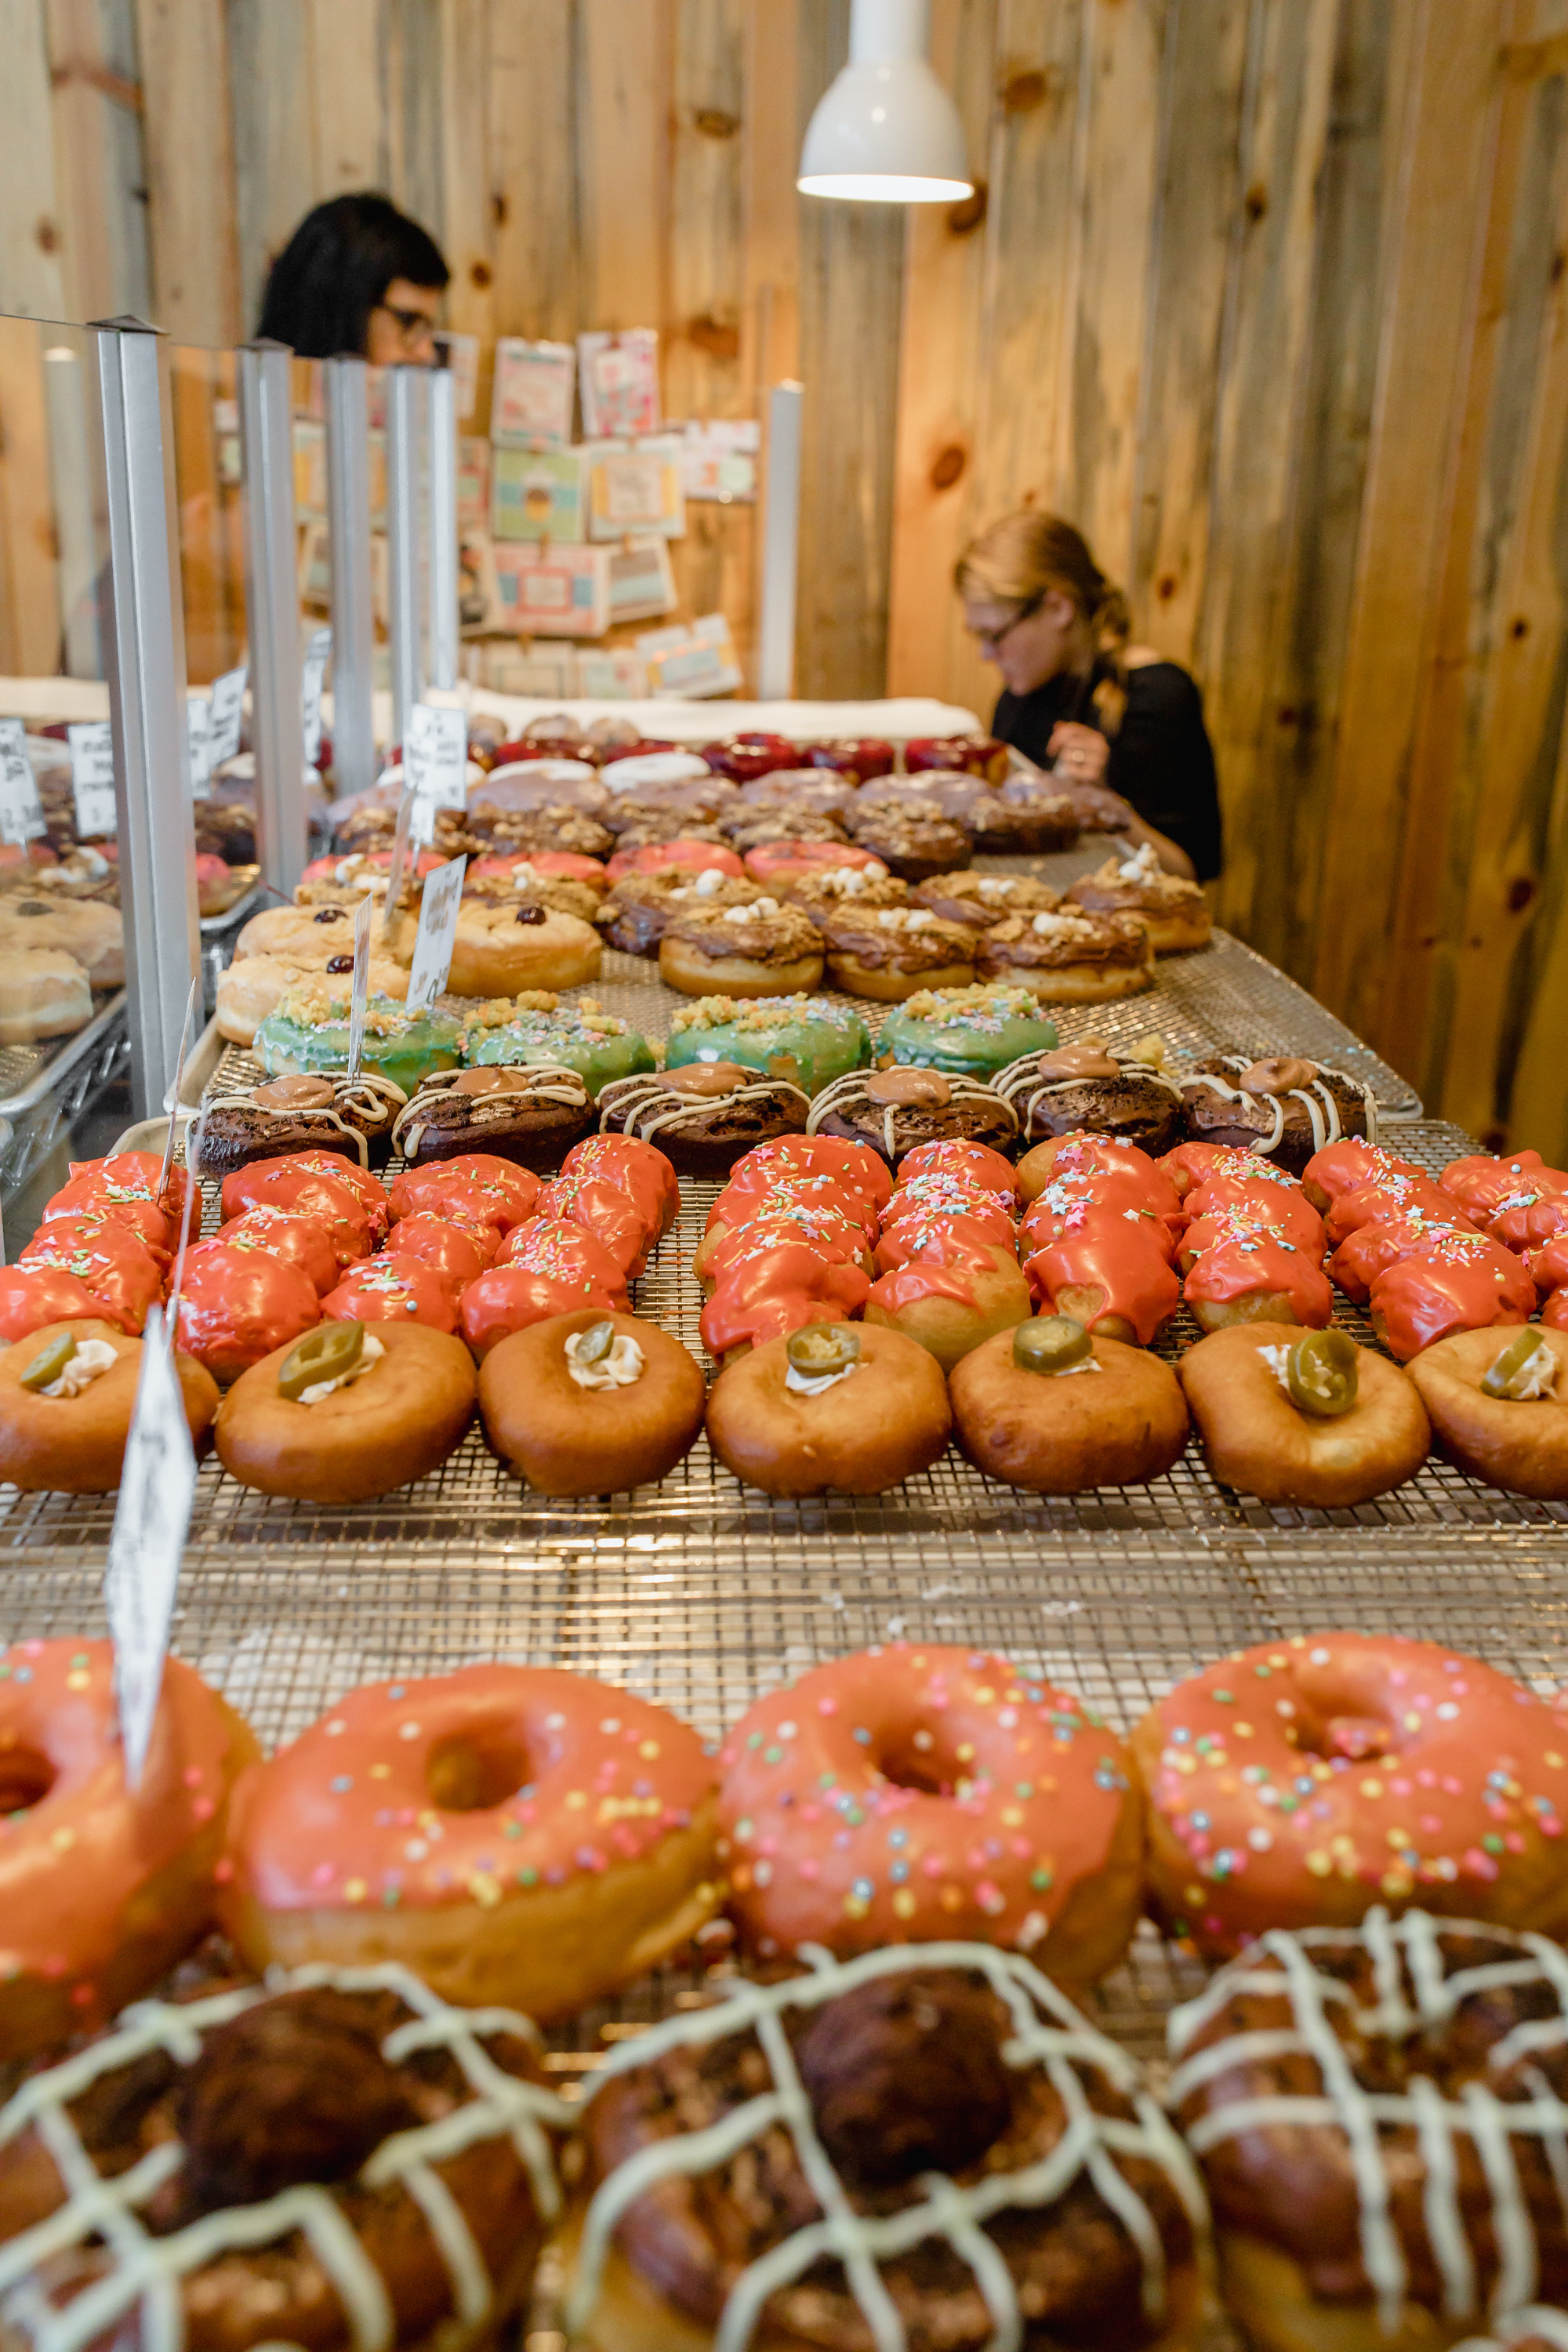 The Best 4 Donut Shops in Portland by Foodie Snitch